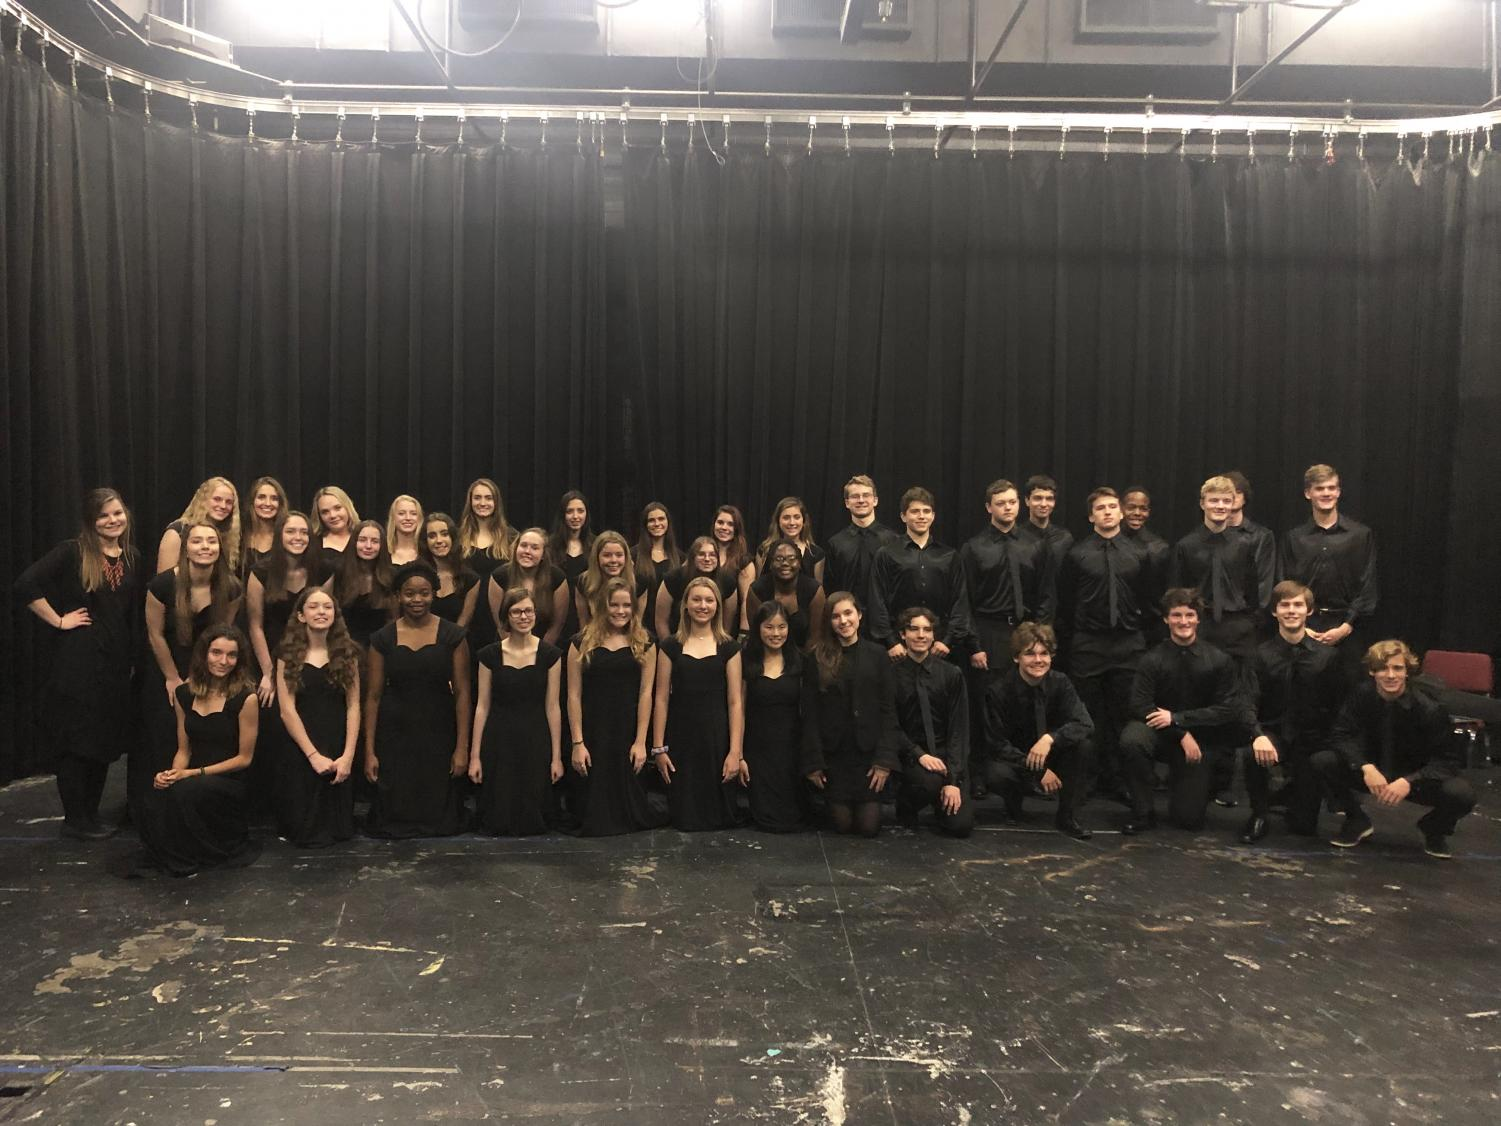 The Upper School Mixed Choir poses for a picture after they performed.